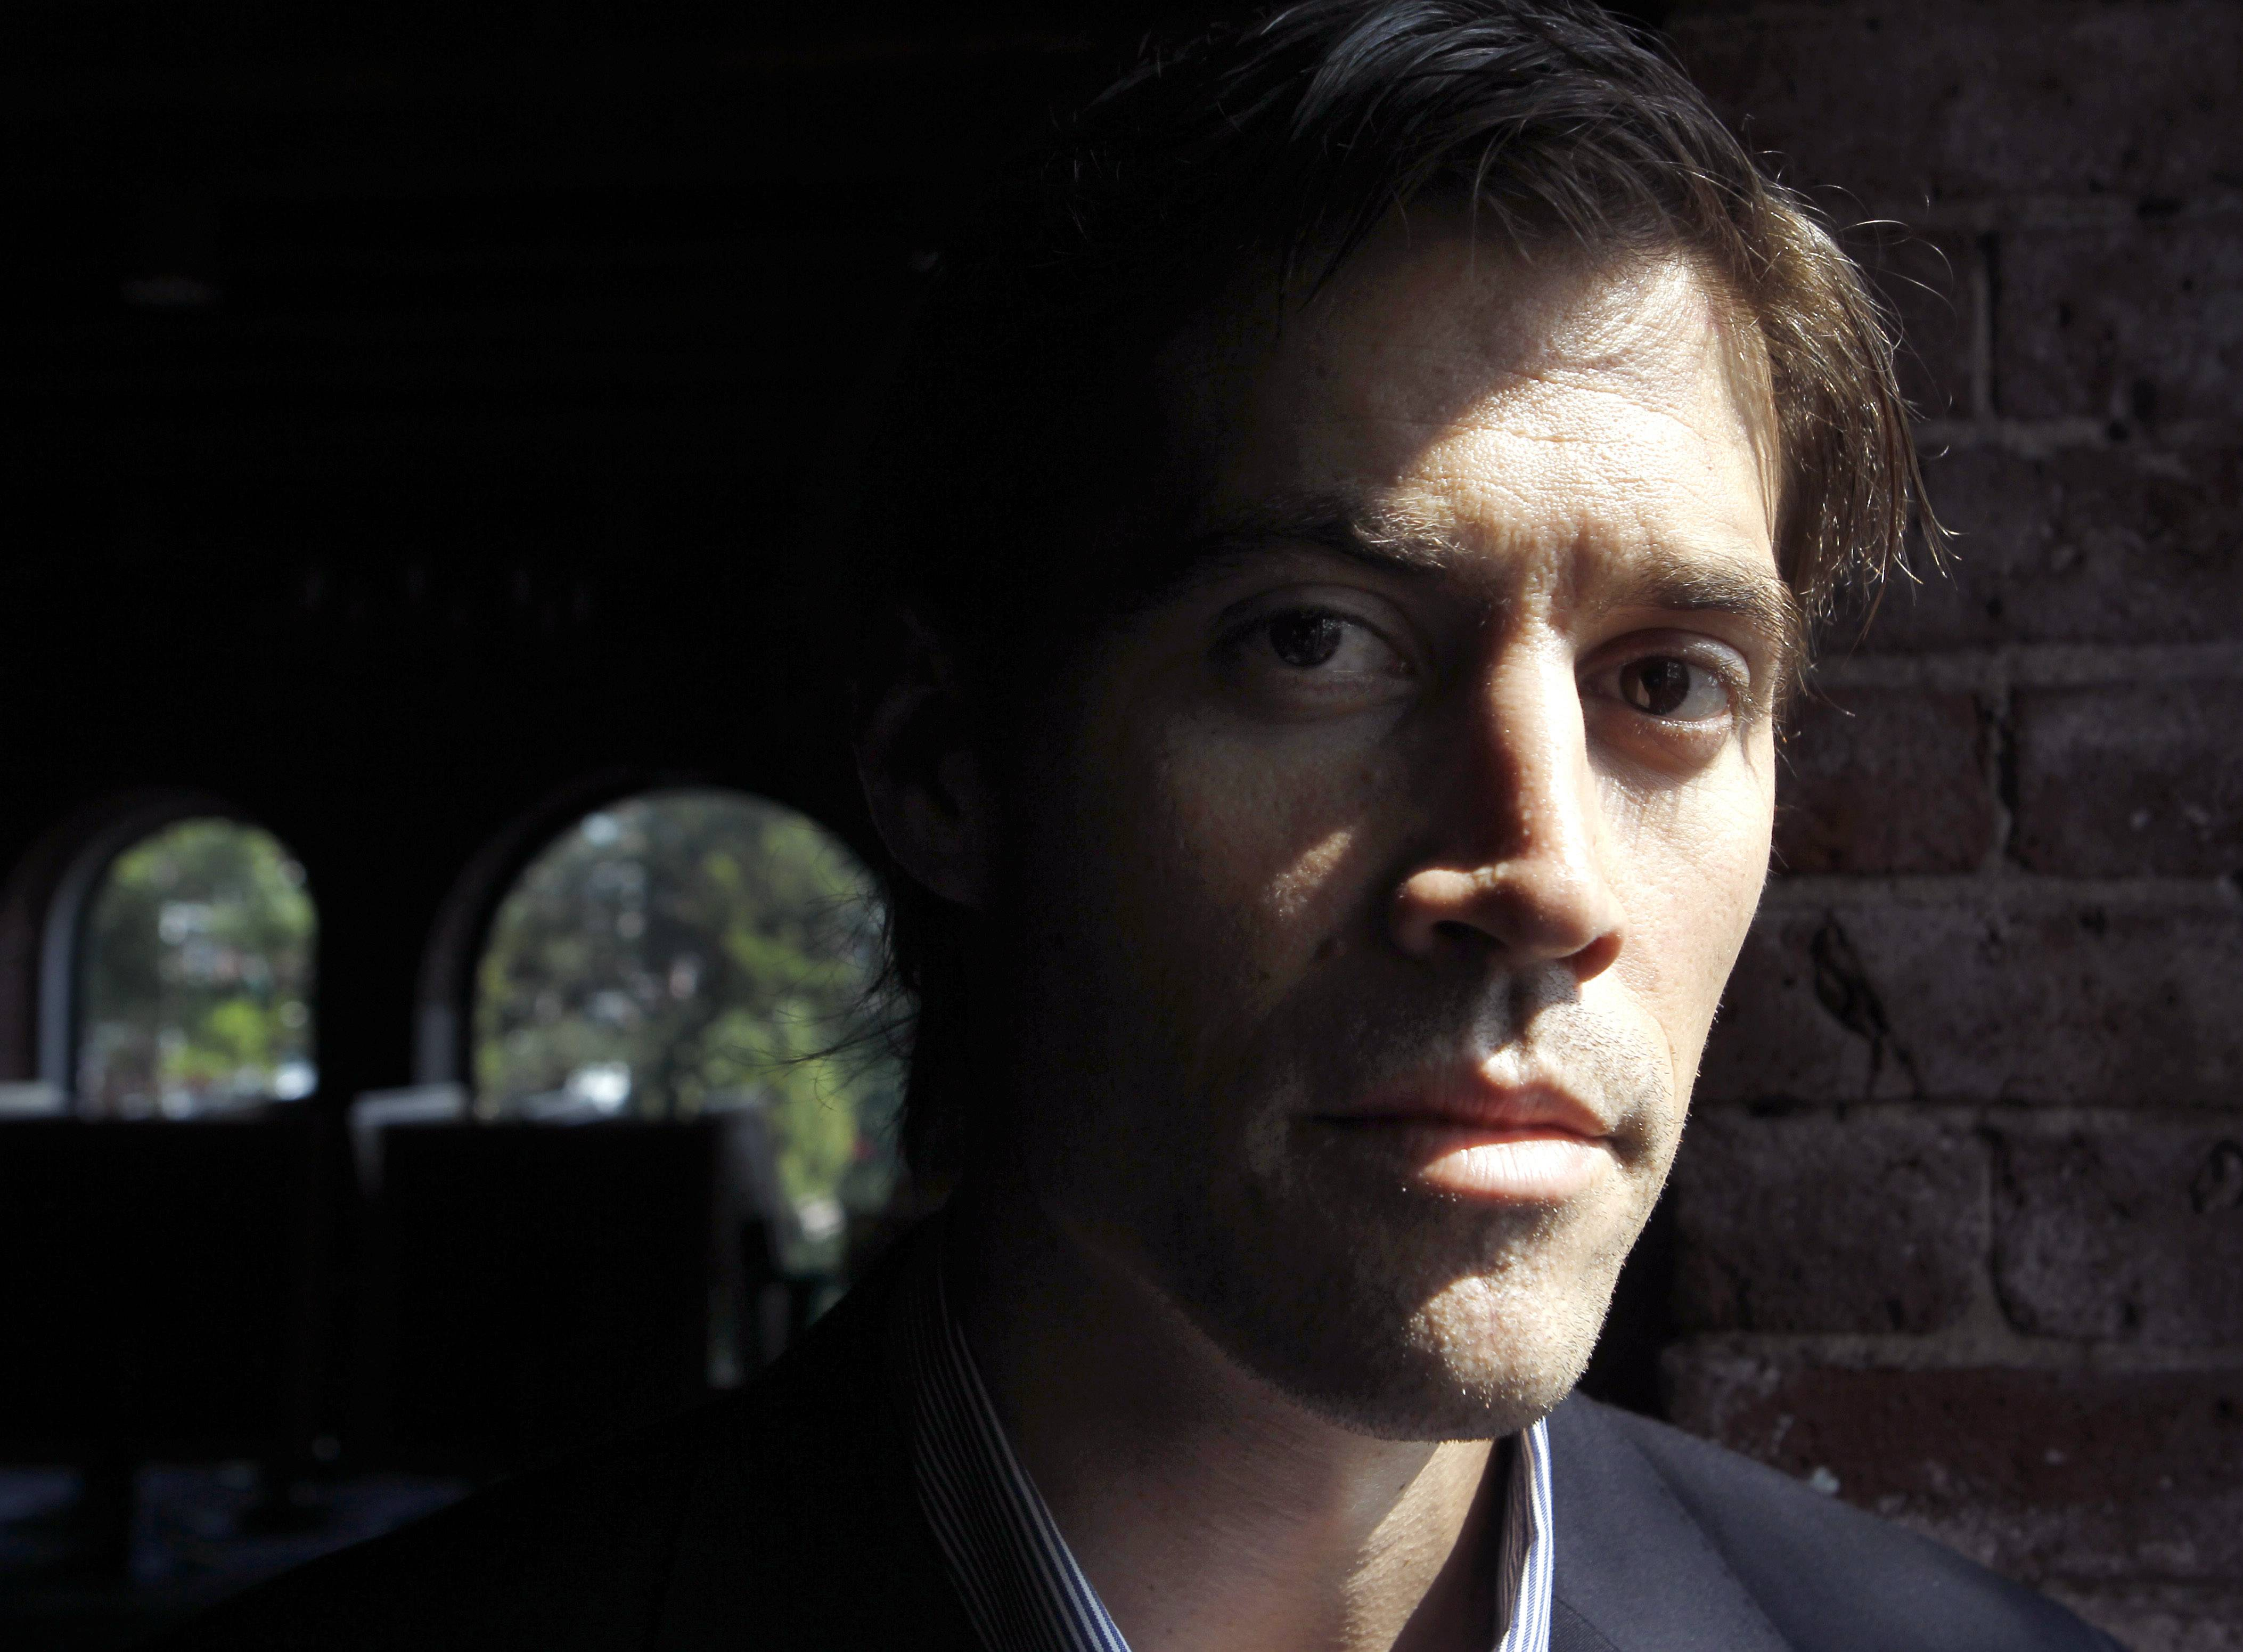 The beheading of American Journalist James Foley has forced a new debate over how the United States balances its unyielding policy against paying ransom to terrorist groups and saving the lives of Americans being held hostage by some of the world's most dangerous extremists.